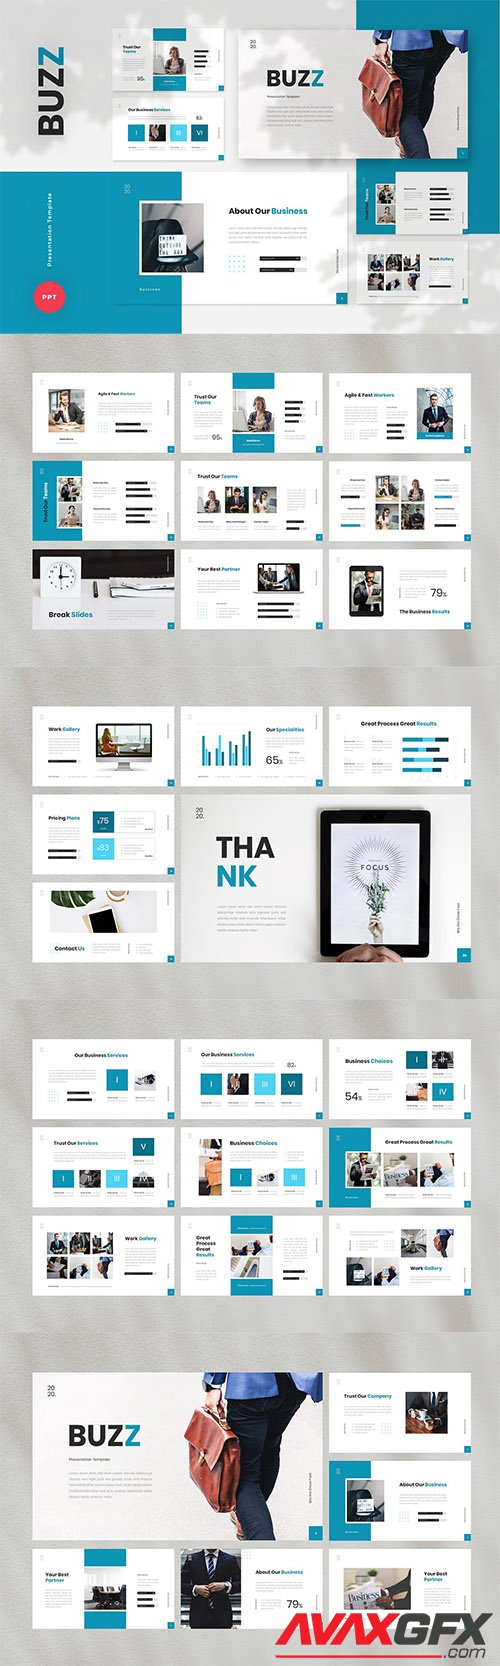 Buzz - Business PowerPoint, Keynote, Google Slides Templates